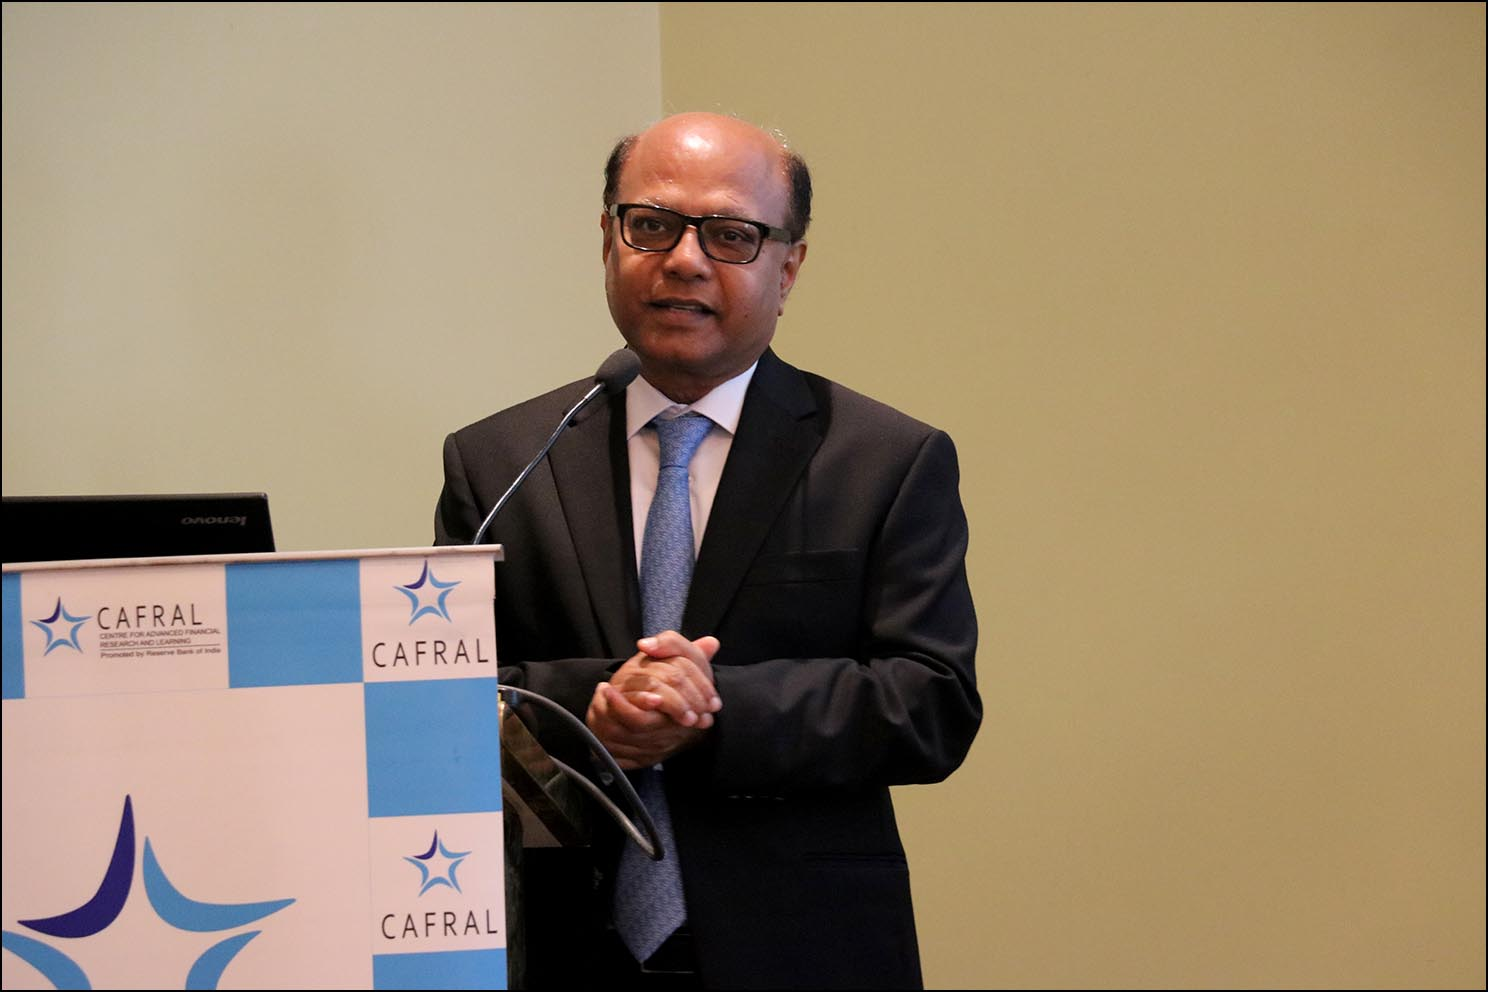 Amarendra Mohan, Senior Program Director, CAFRAL